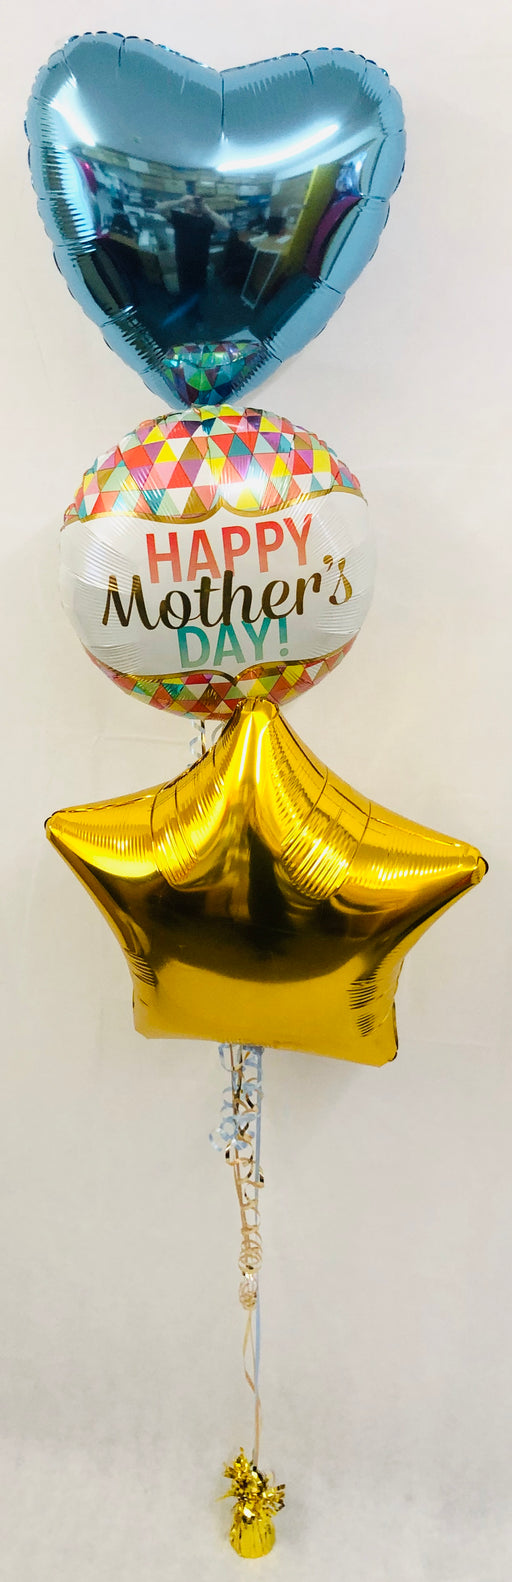 Mothers Day Balloon Display - Bright - The Ultimate Party Shop